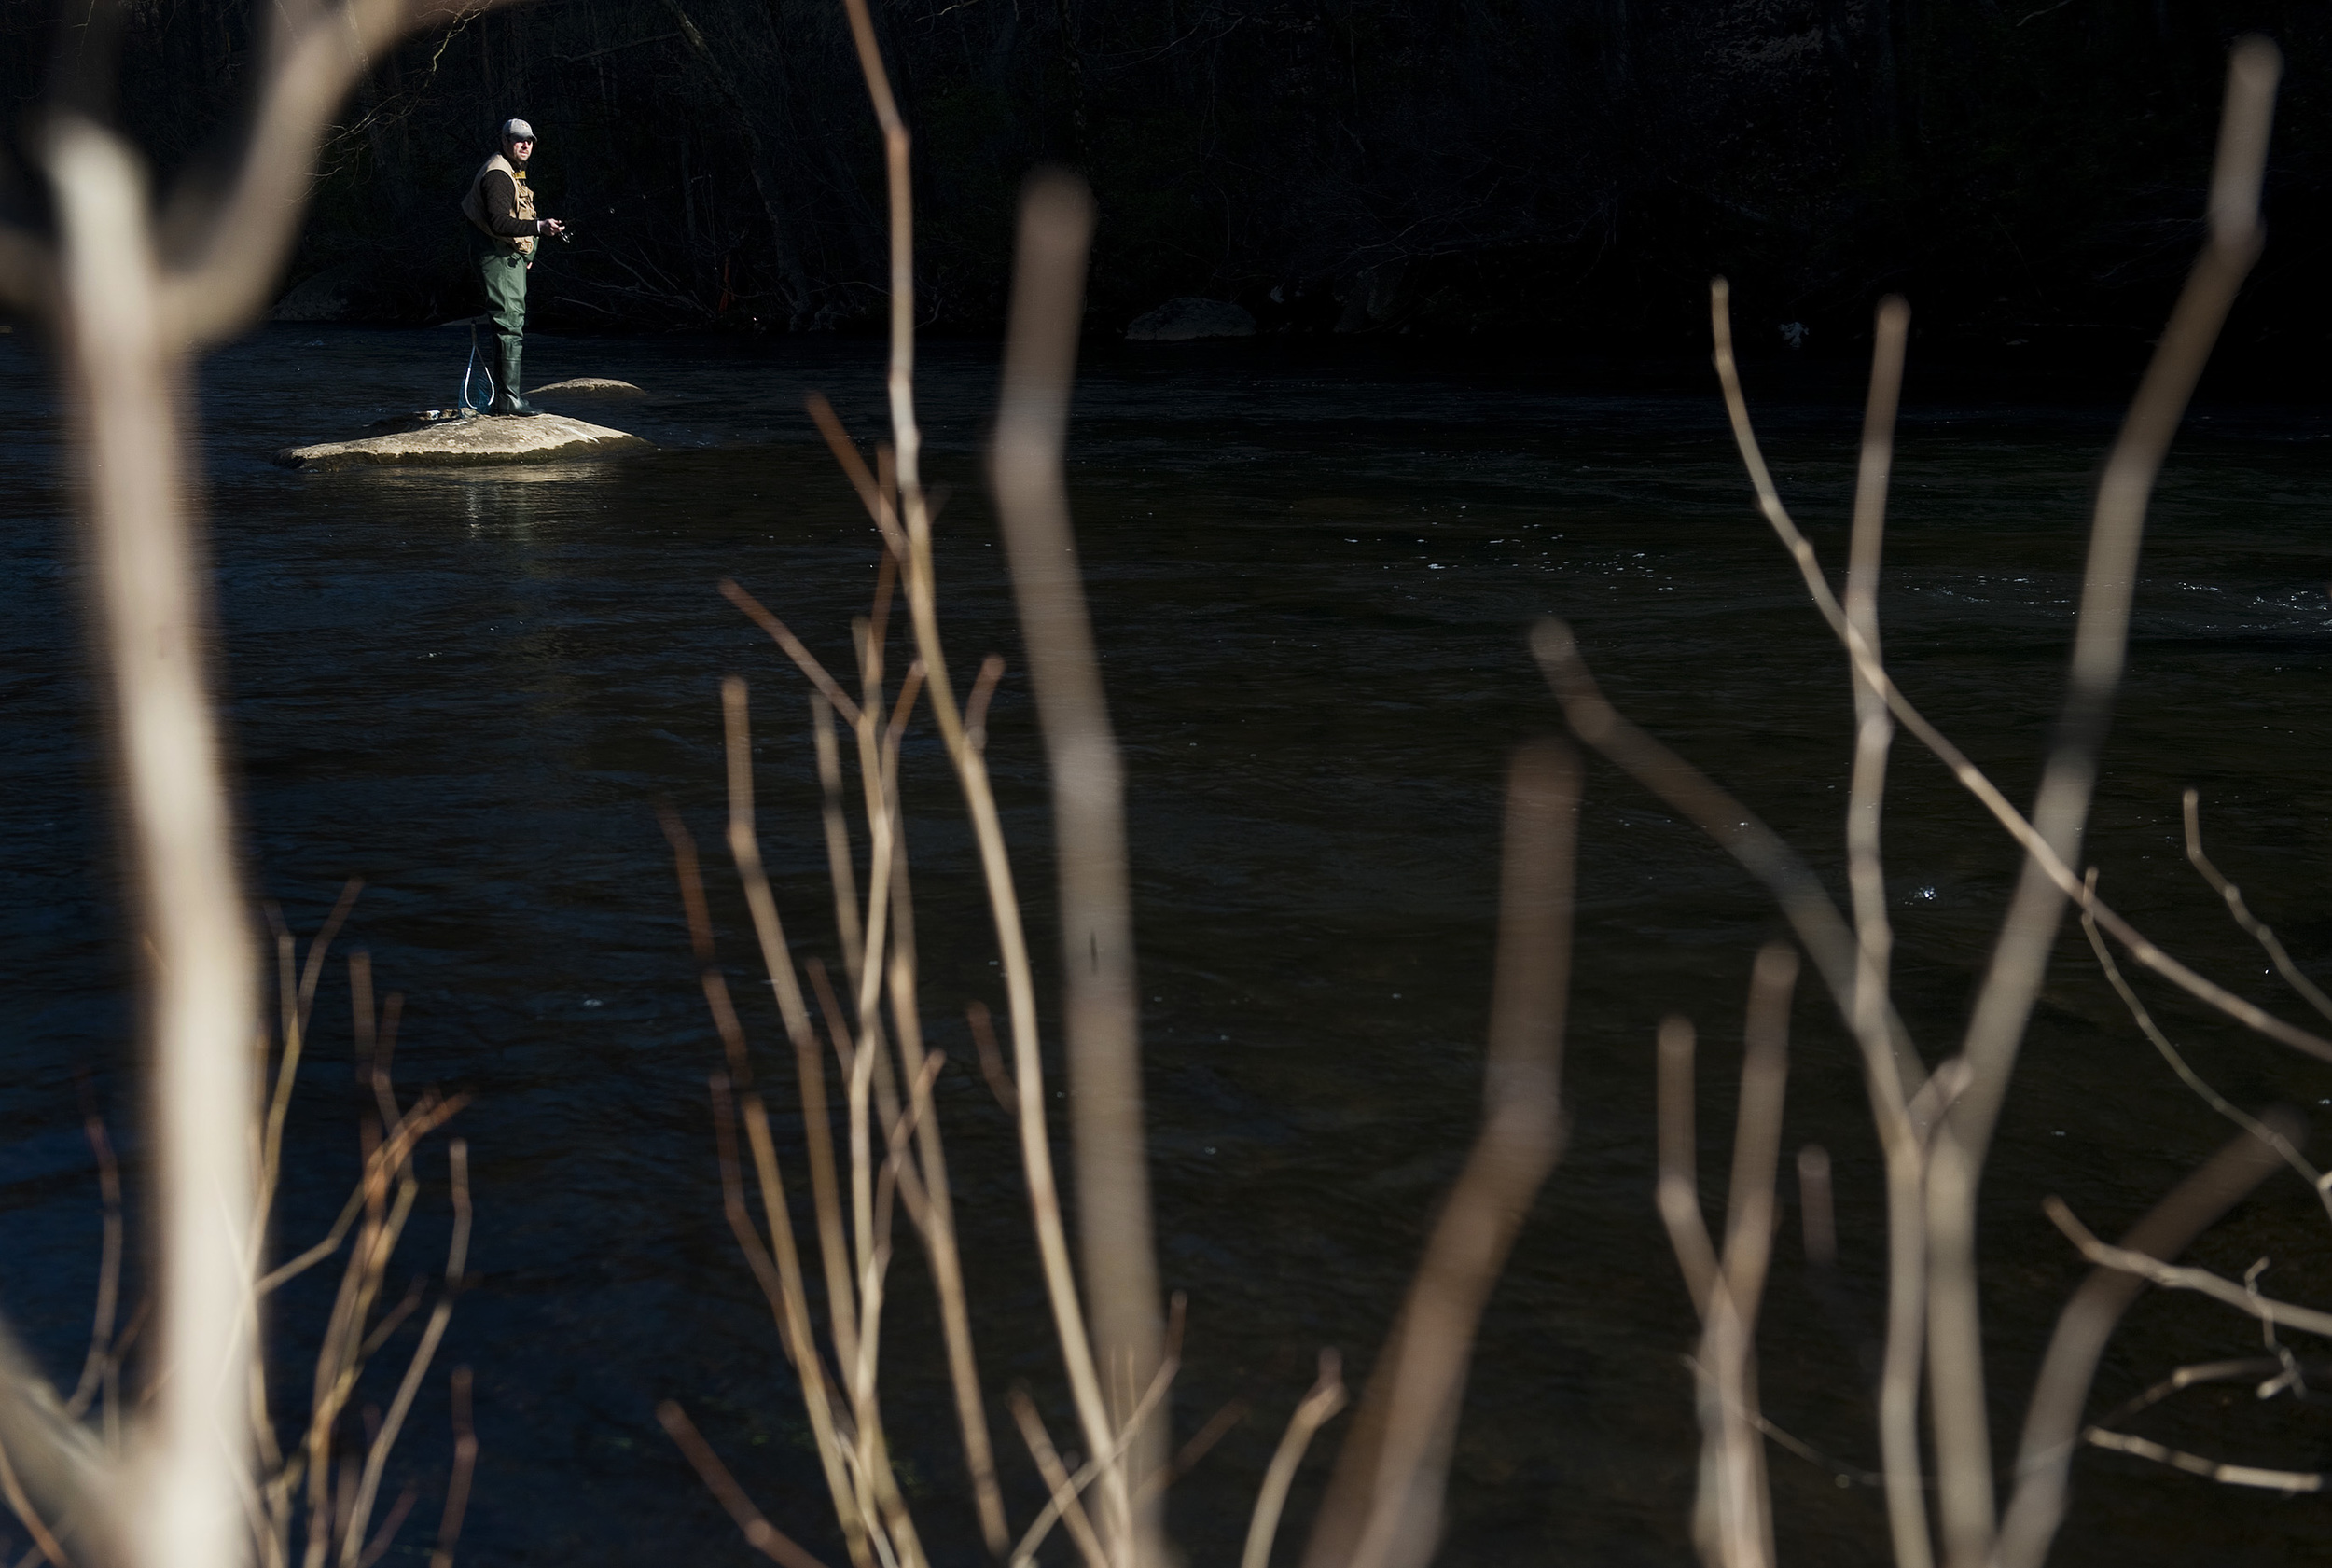 John Picciano of Hempfield fishes along the Loyalhanna Creek near Ligonier as the sun rises on Saturday, April 16, 2016. Saturday at 8 a.m. marked the opening day of trout season.